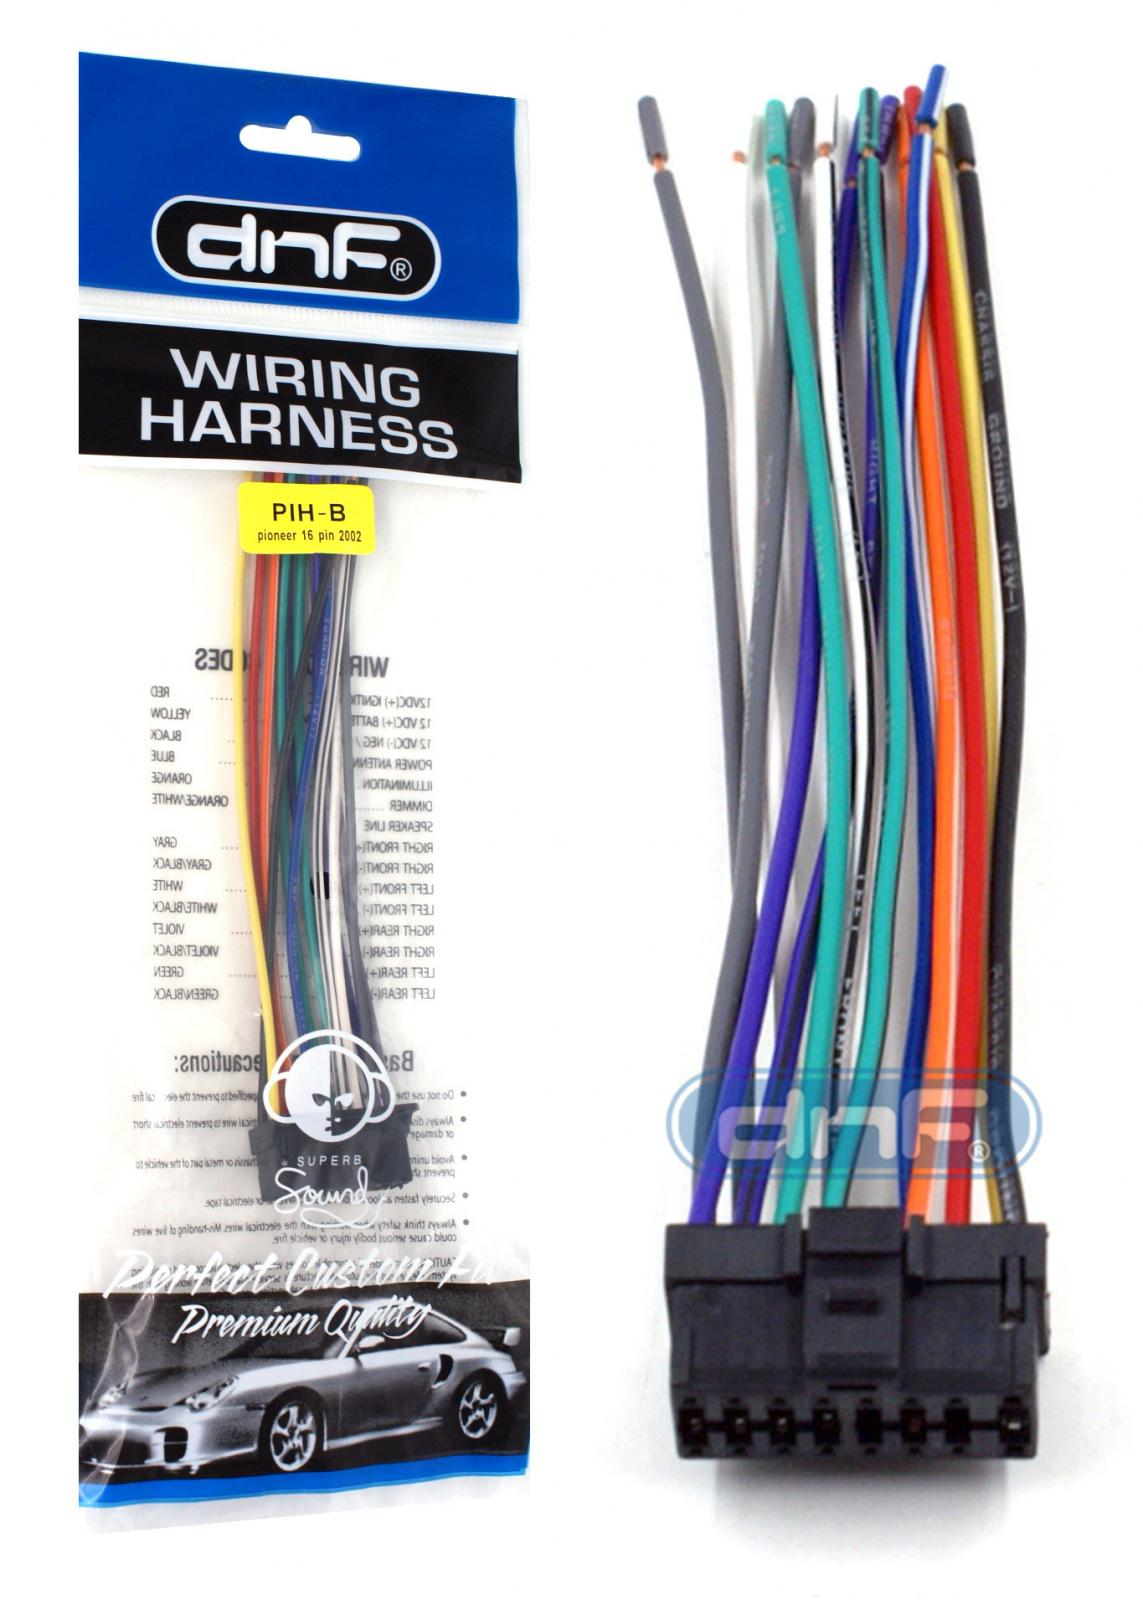 hight resolution of pioneer wiring harness deh p6400 deh p6450 fh p4000 free same day